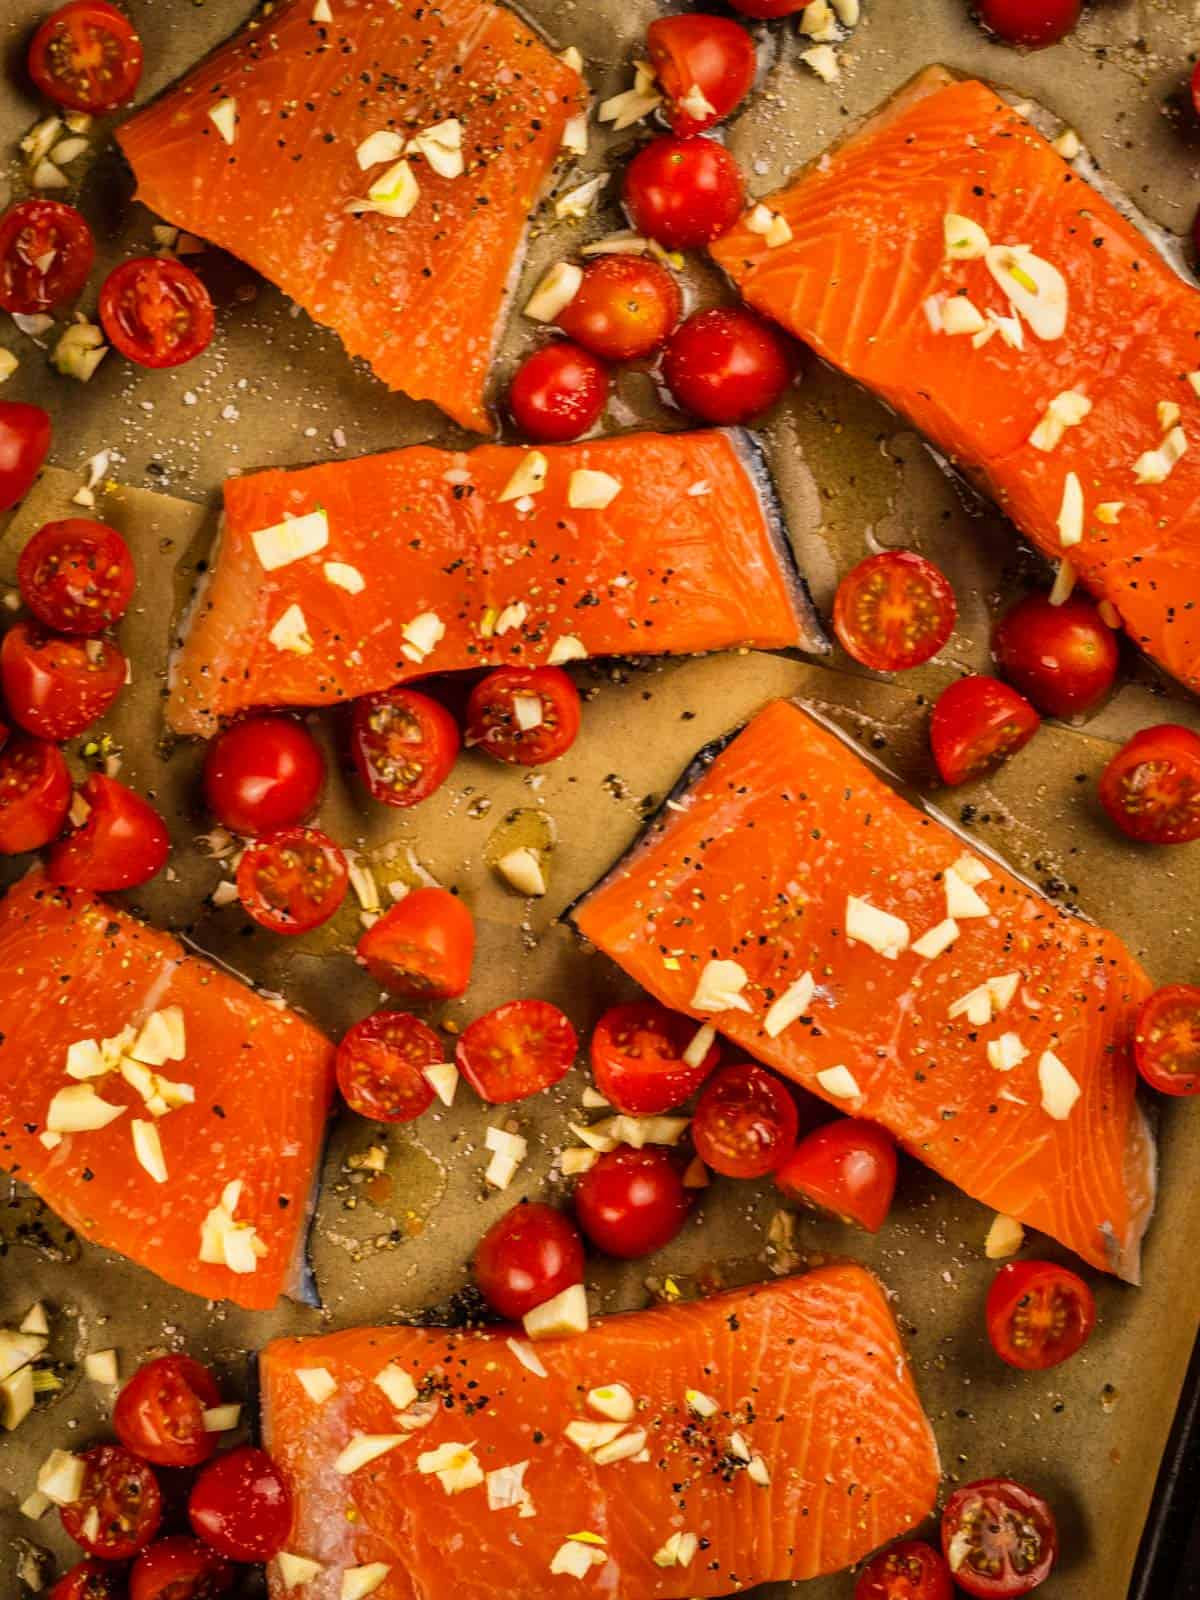 minced garlic on raw salmon filets and halved tomatoes